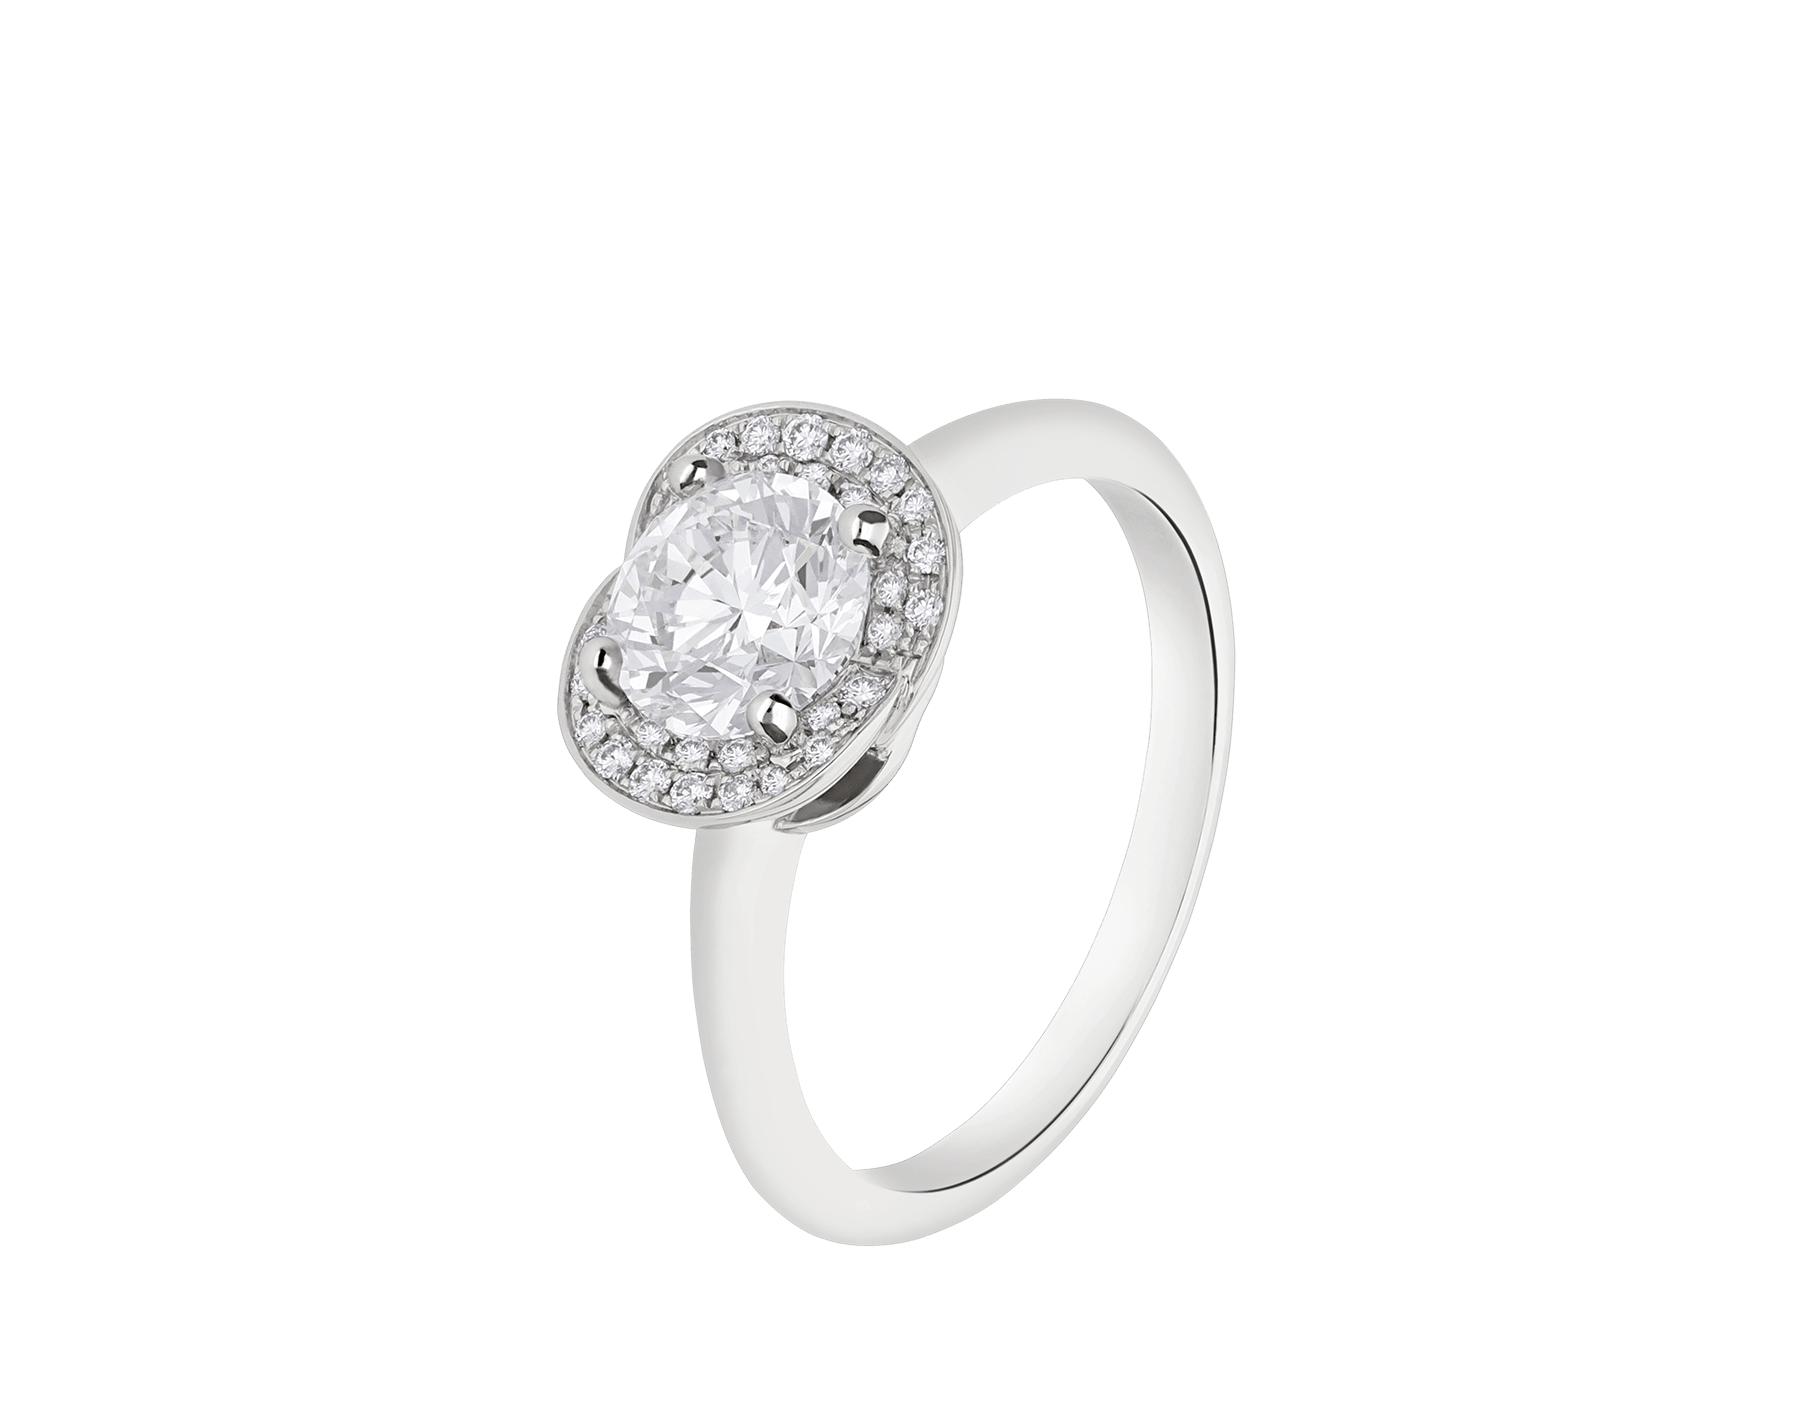 Incontro d'Amore platinum ring set with a round brilliant-cut diamond and a halo of pavé diamonds. 355409 image 1